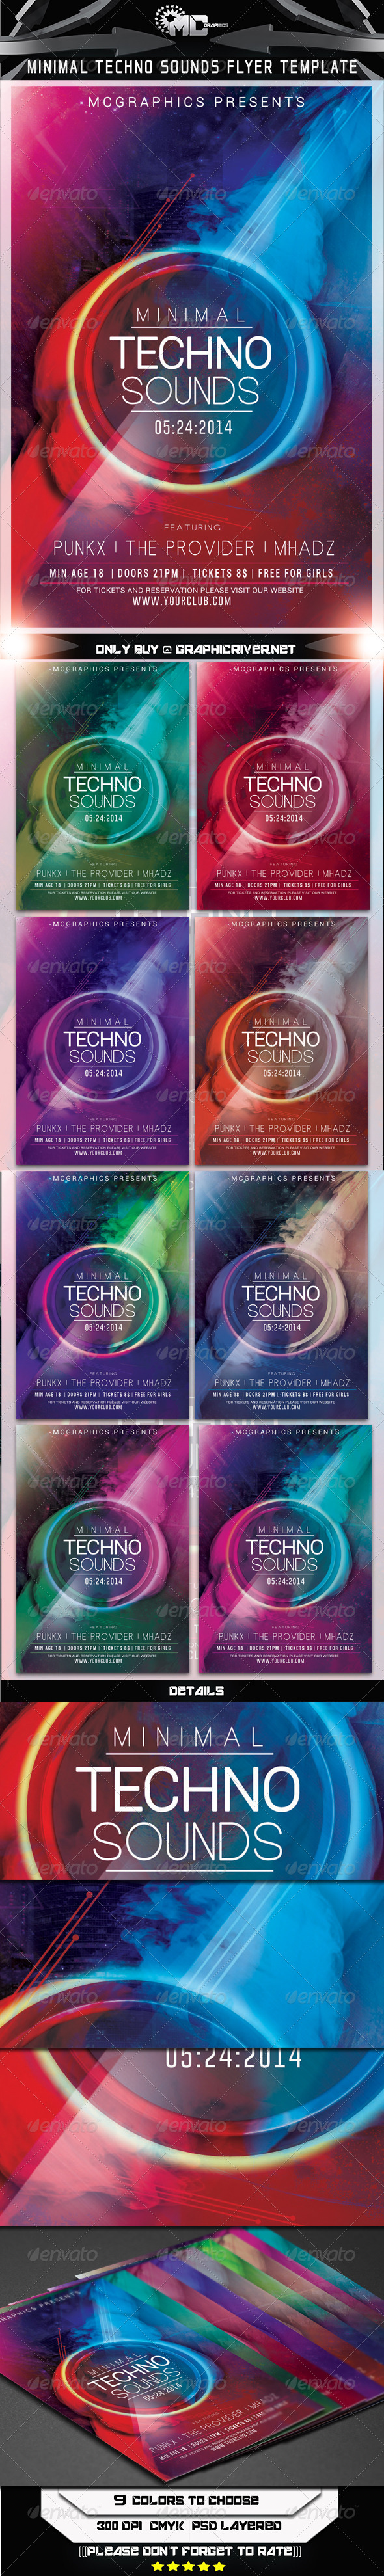 GraphicRiver Minimal Techno Sounds Flyer Template 7609810